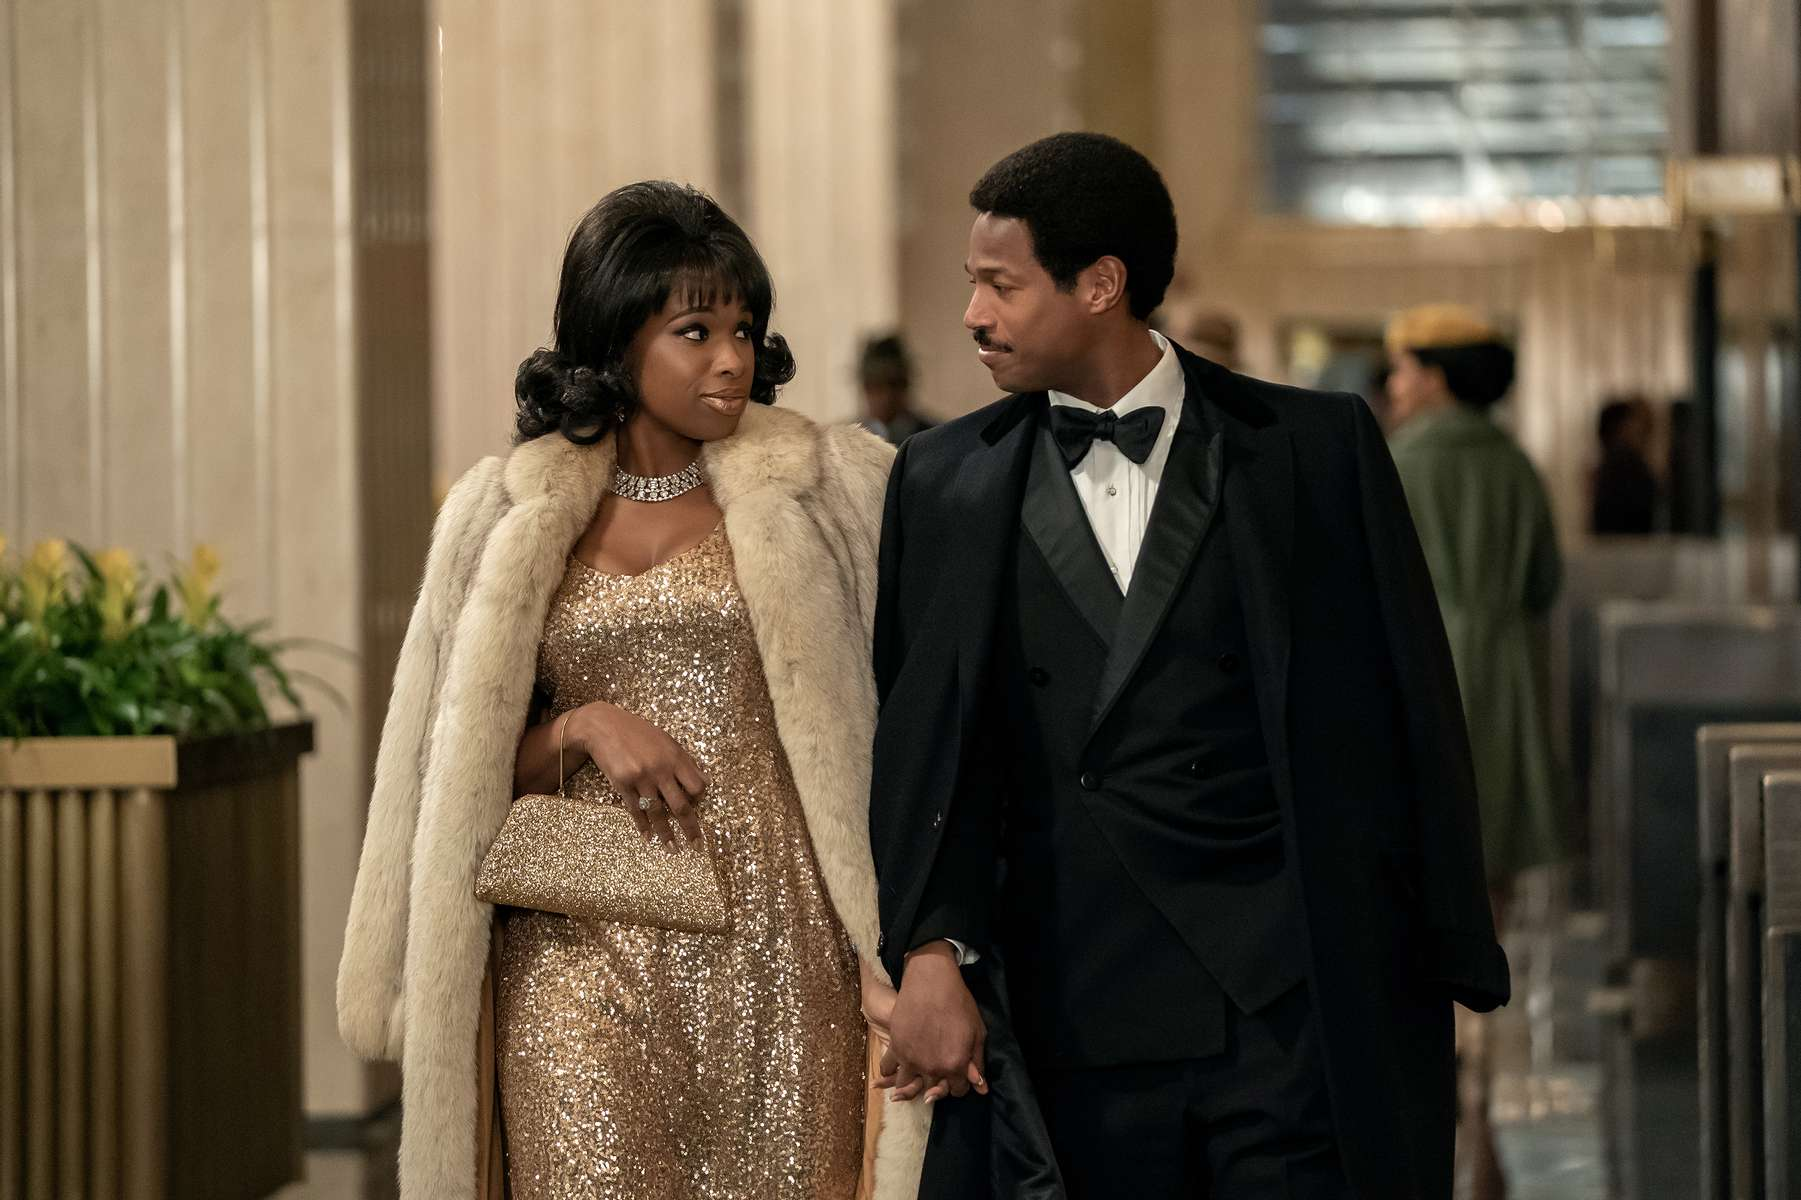 R_25682_RJennifer Hudson stars as Aretha Franklin and Marlon Wayans as Ted White inRESPECT, A Metro Goldwyn Mayer Pictures filmPhoto credit: Quantrell D. Colbert